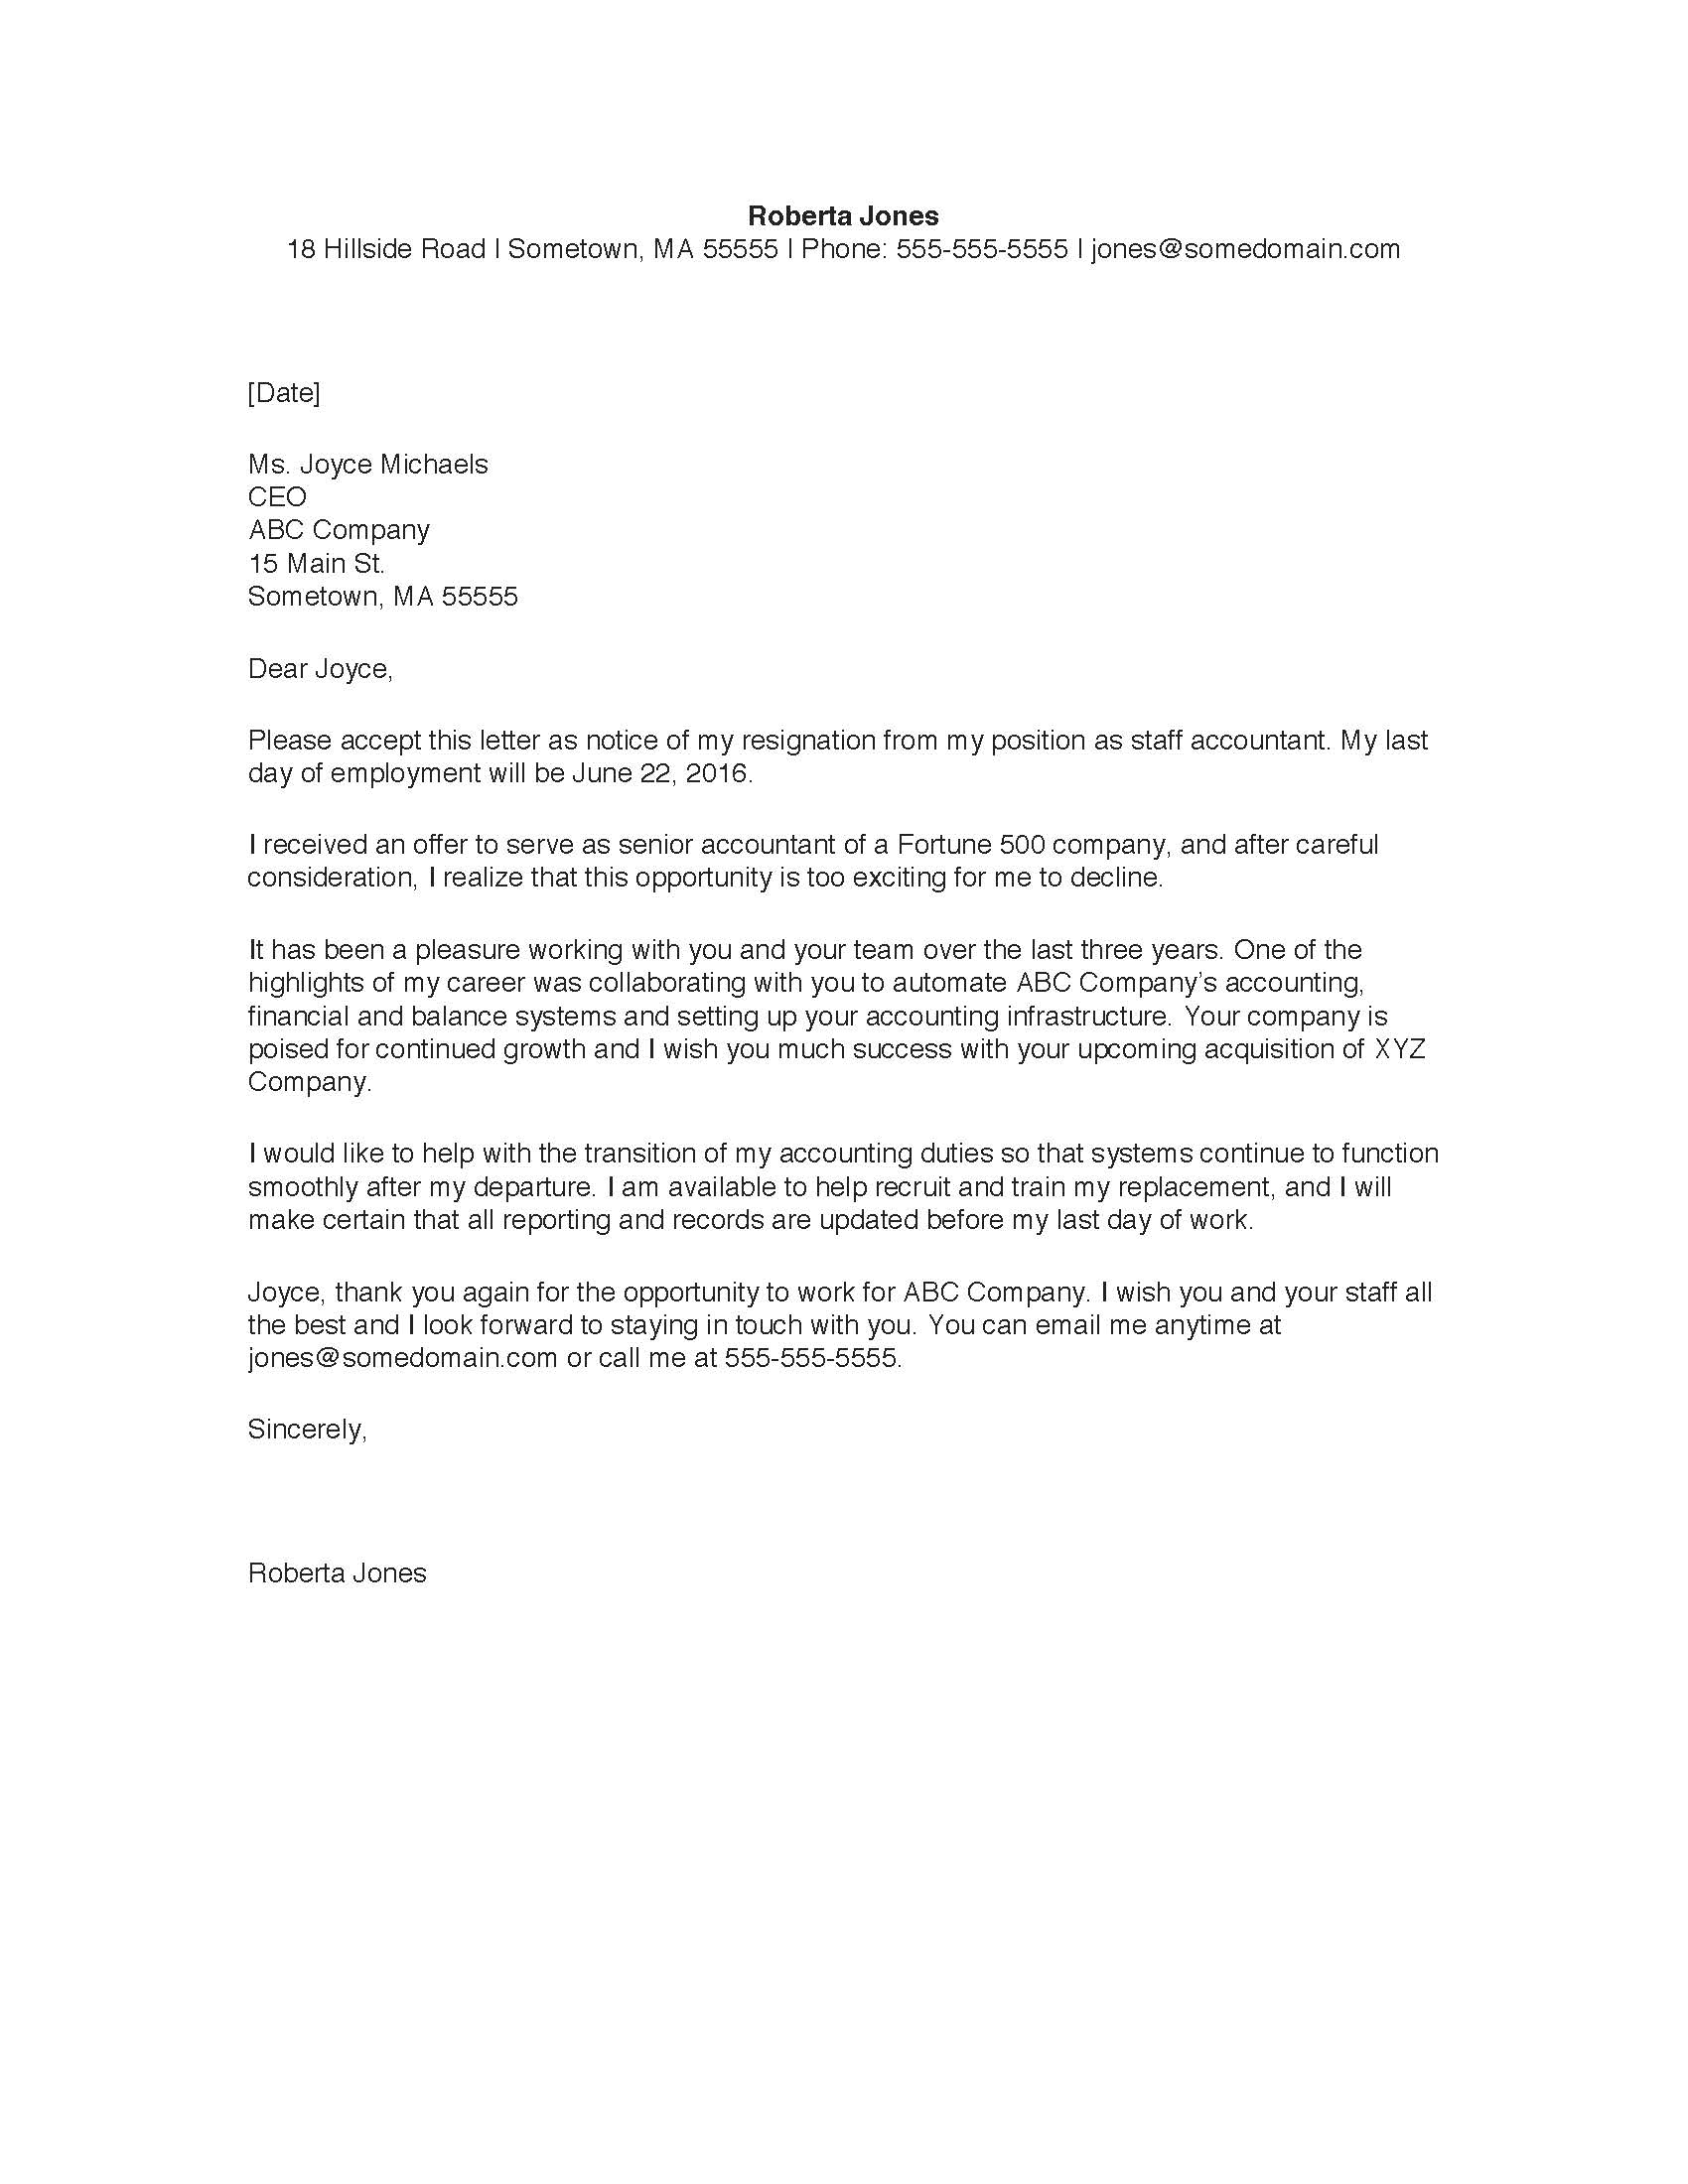 Sample resignation letter monster sample resignation letter expocarfo